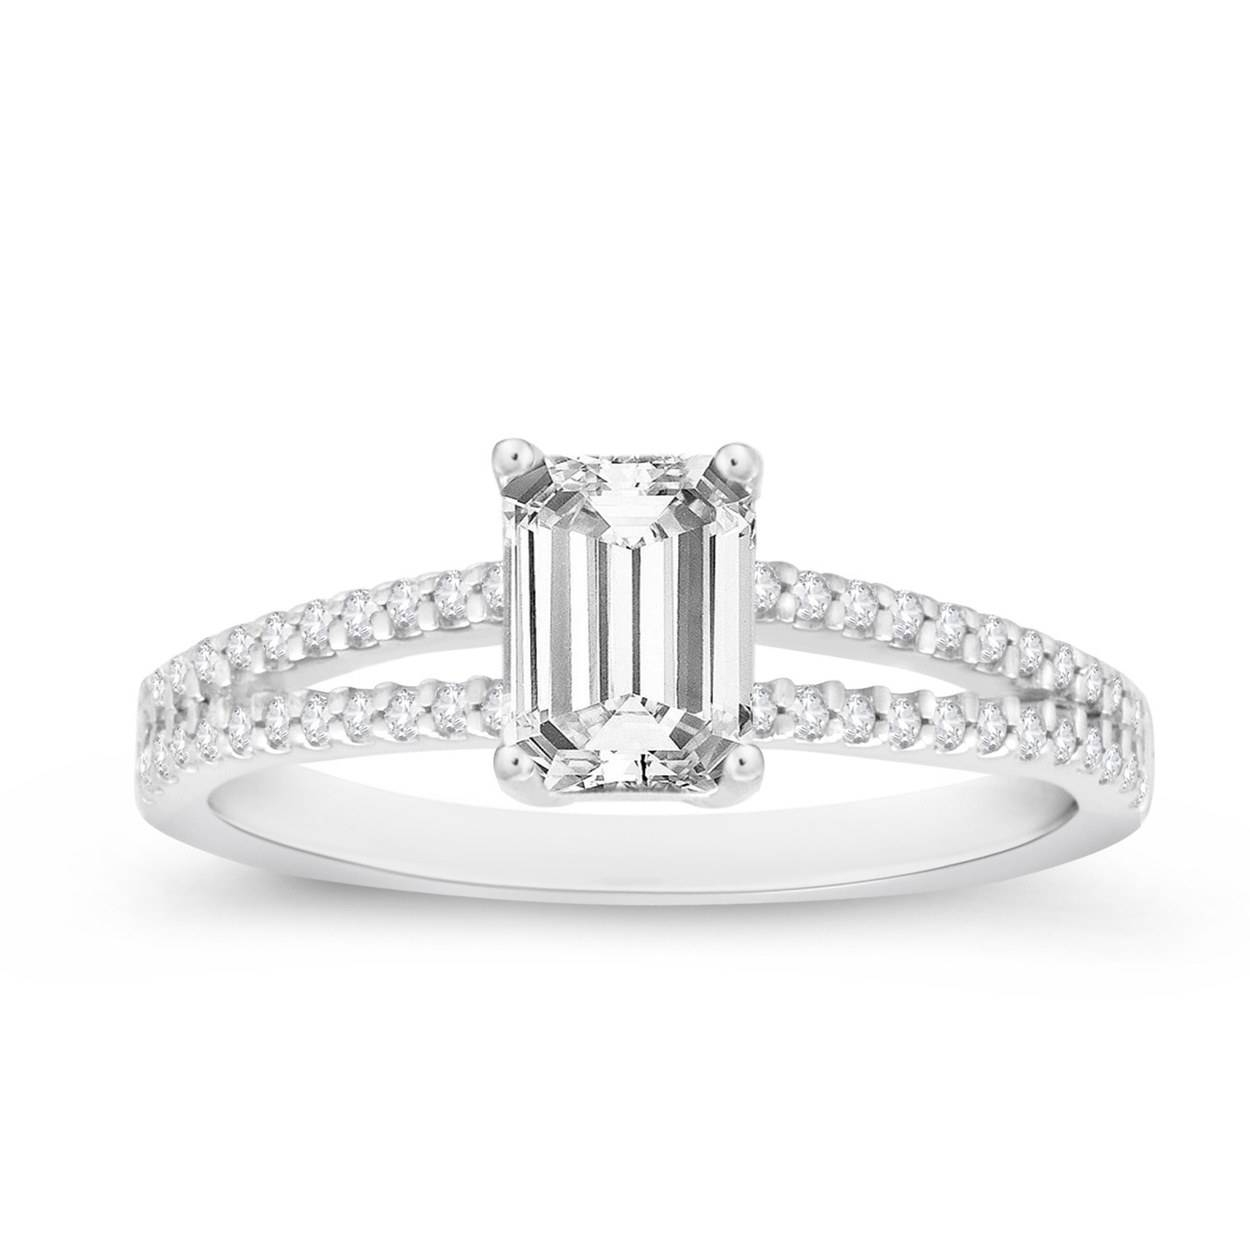 62 Diamond Engagement Rings Under $5,000 | Glamour In Silver Emerald Engagement Rings (View 2 of 15)